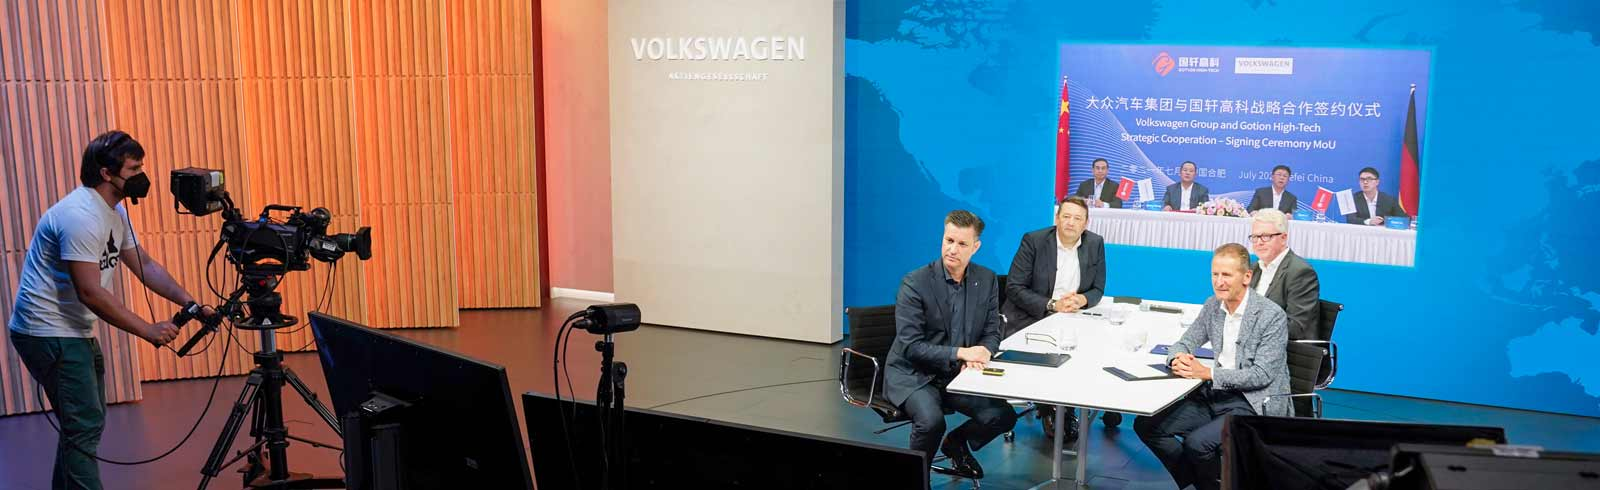 Volkswagen Group and Gotion High-Tech of China team up for an EV battery factory in Germany